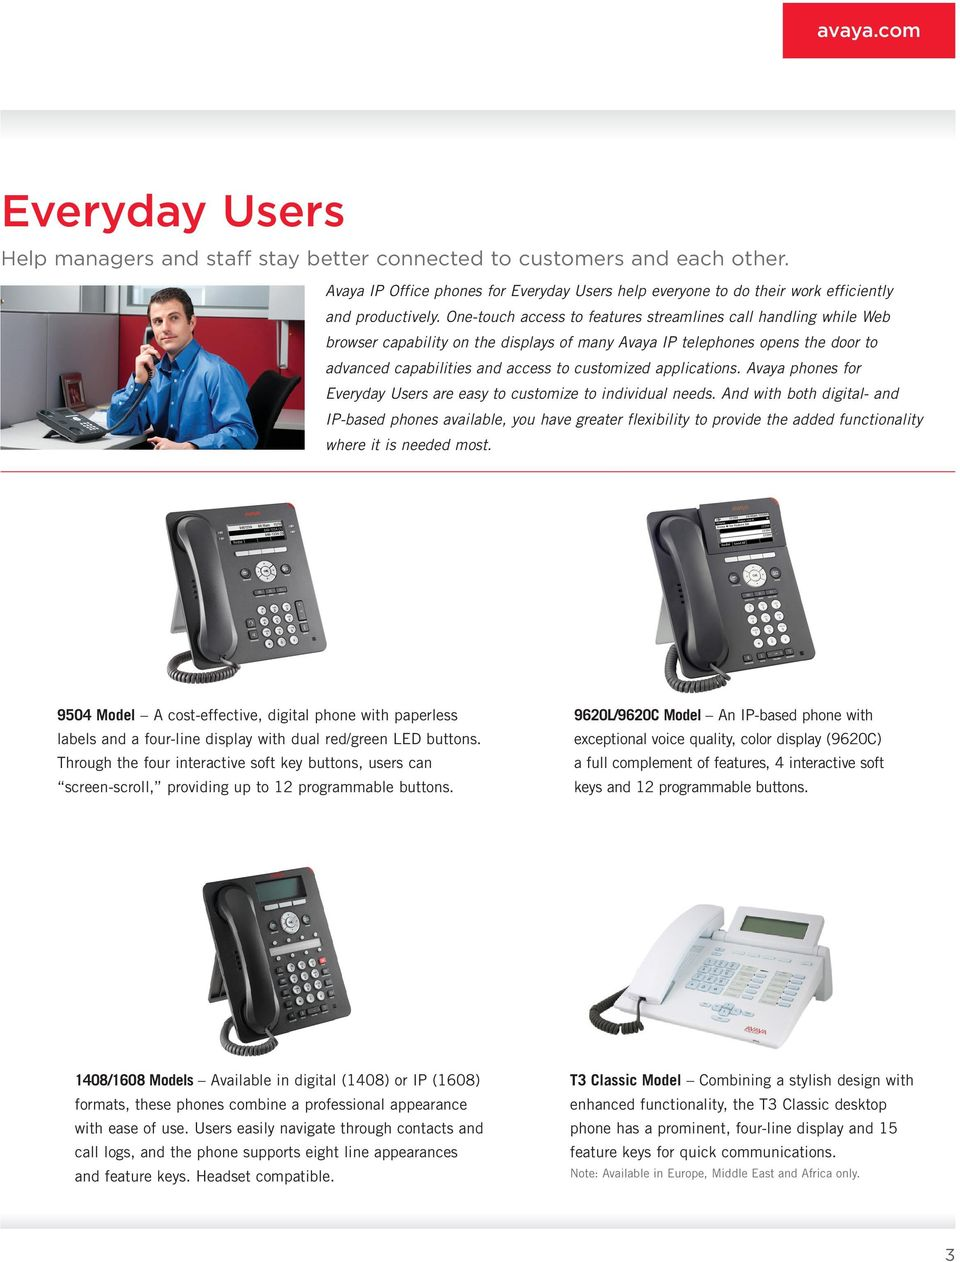 applications. Avaya phones for Everyday Users are easy to customize to individual needs.